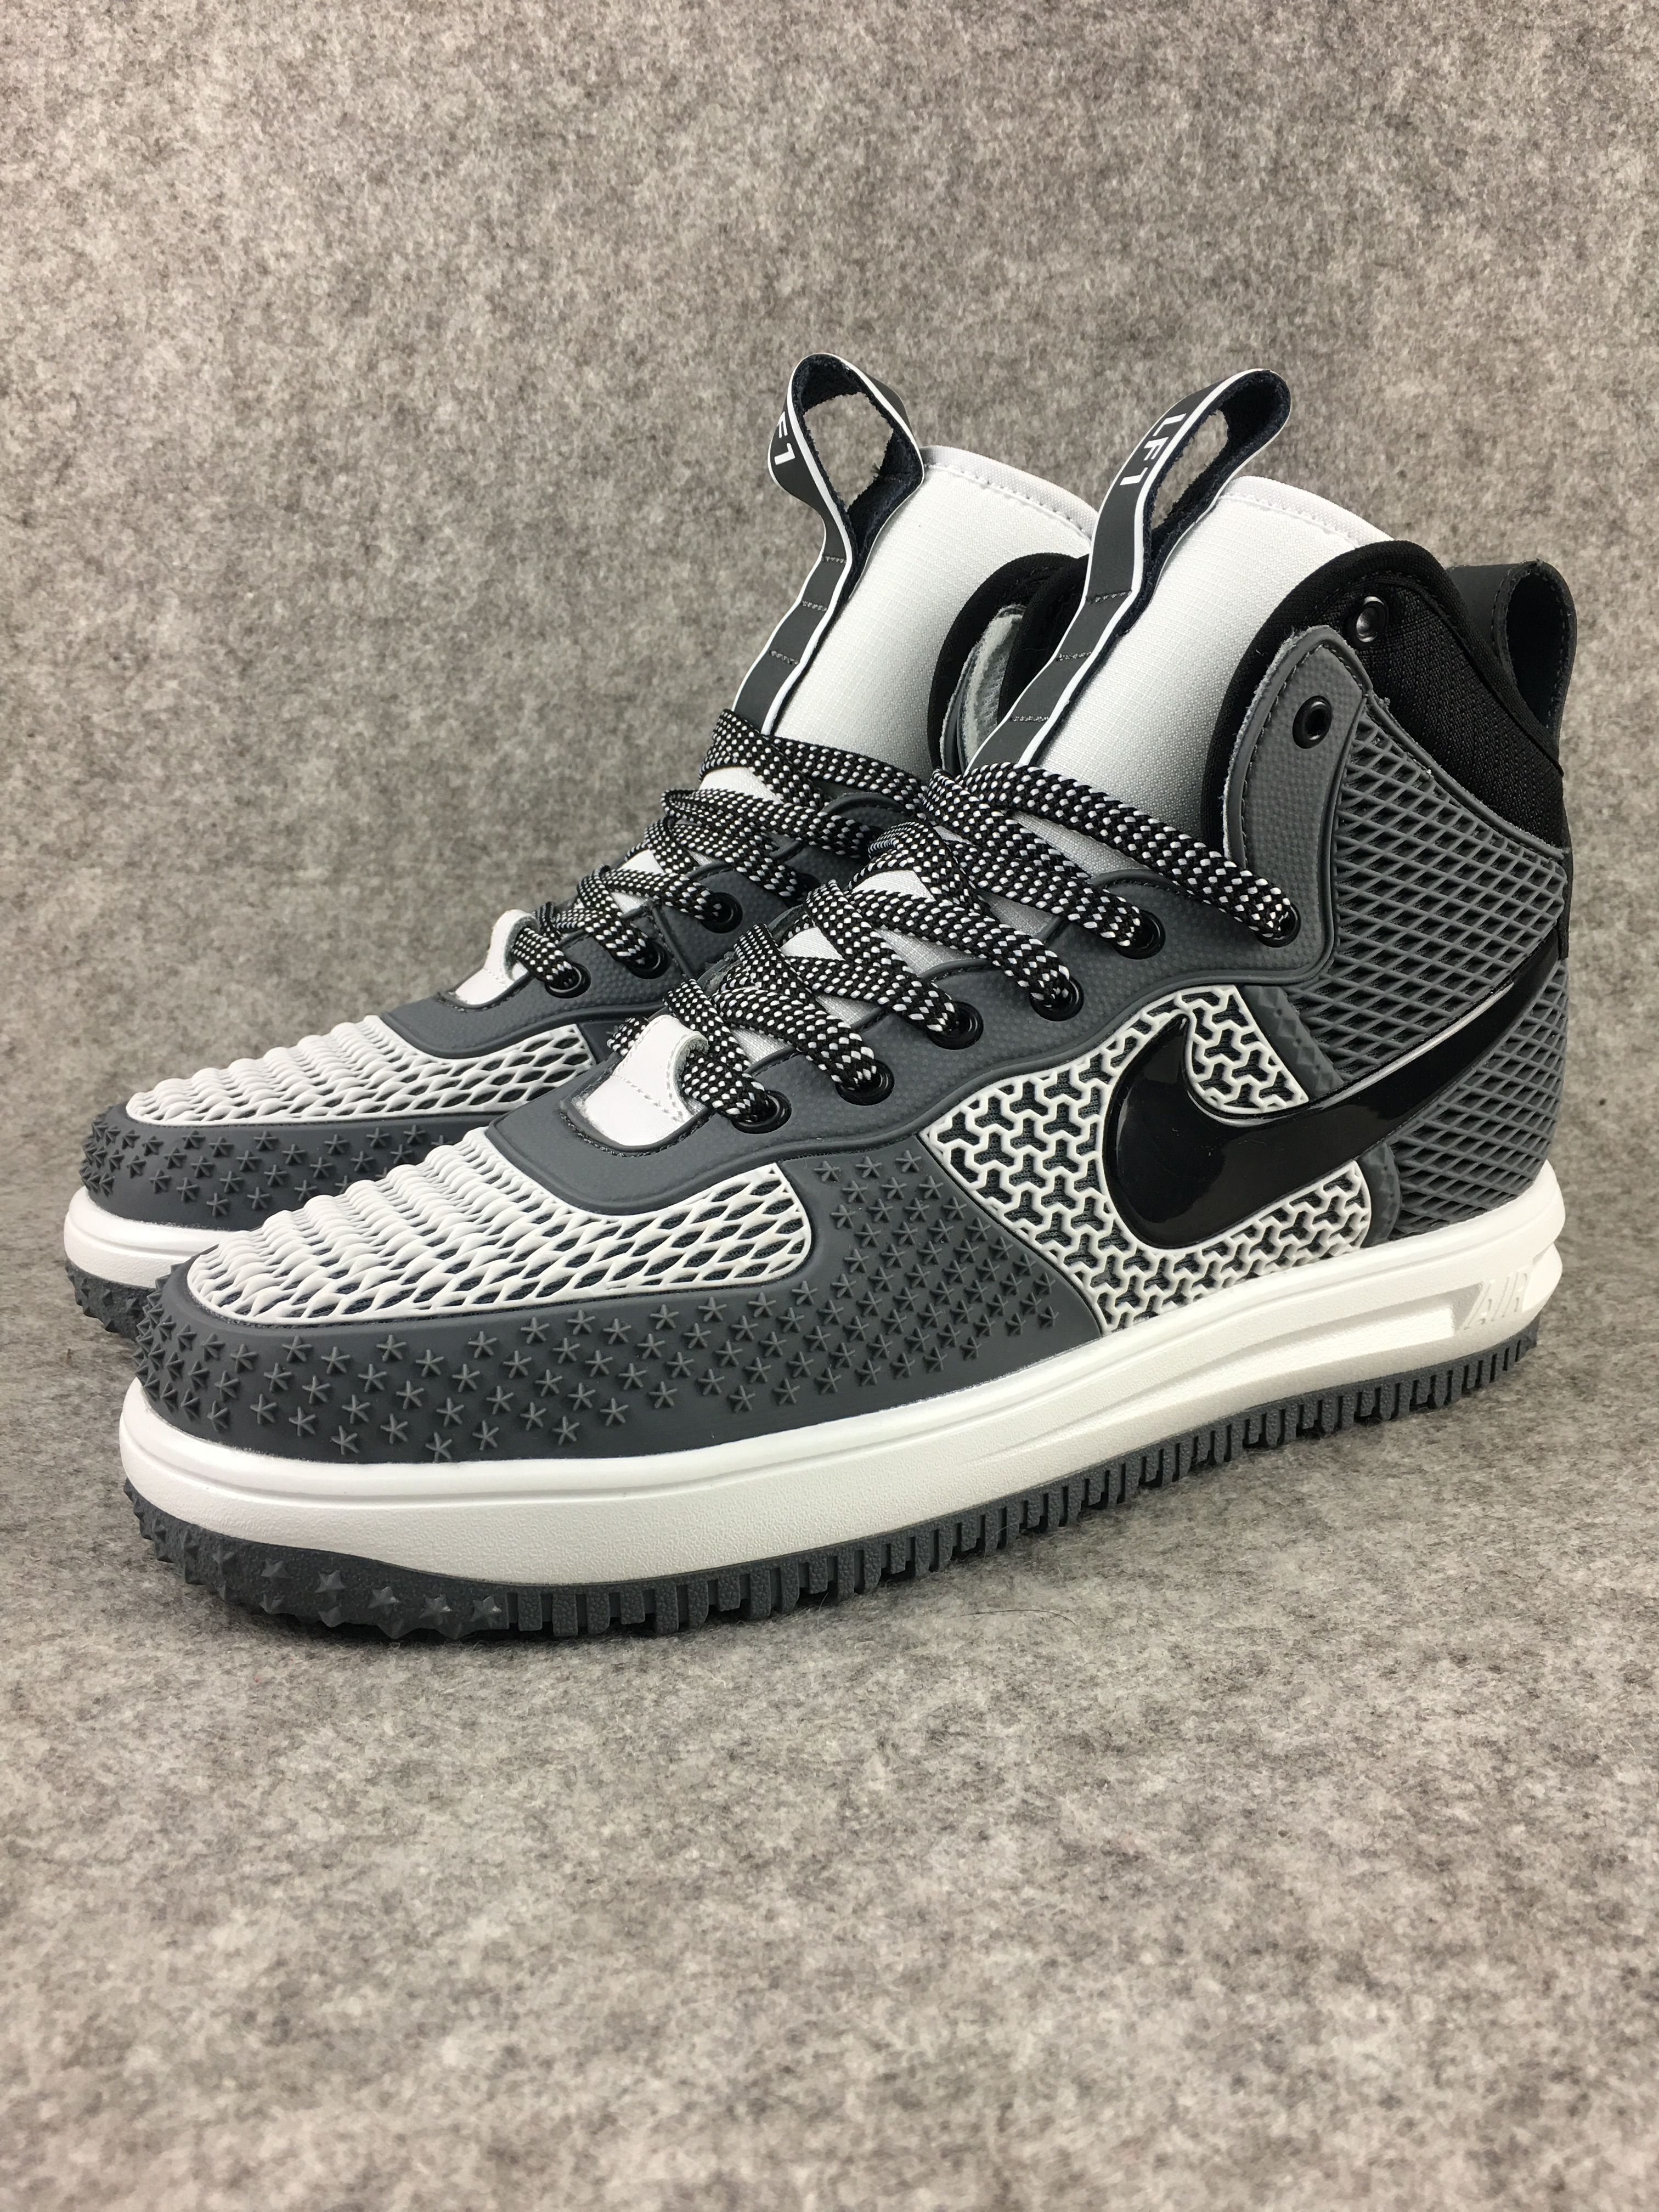 Nike Lunar Force 1 Nano Grey White Black Shoes